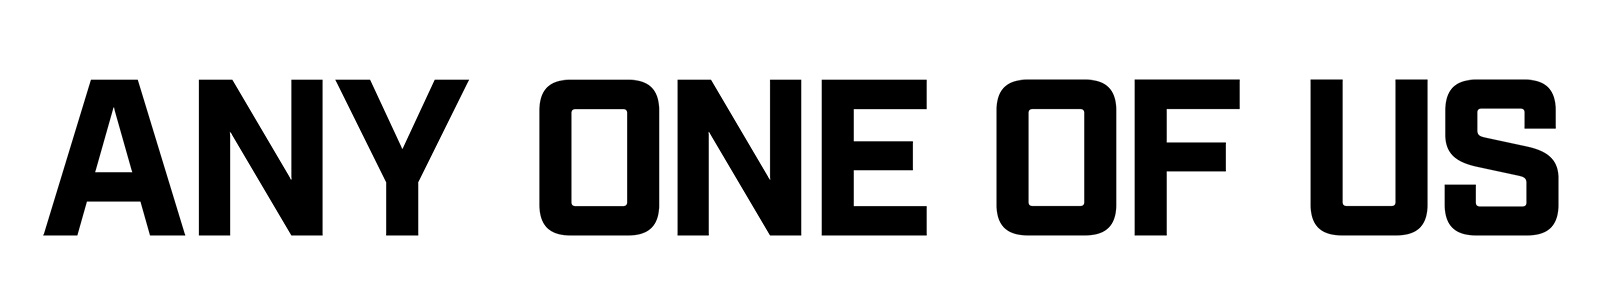 any-one-of-us-logo-1600x300.jpg